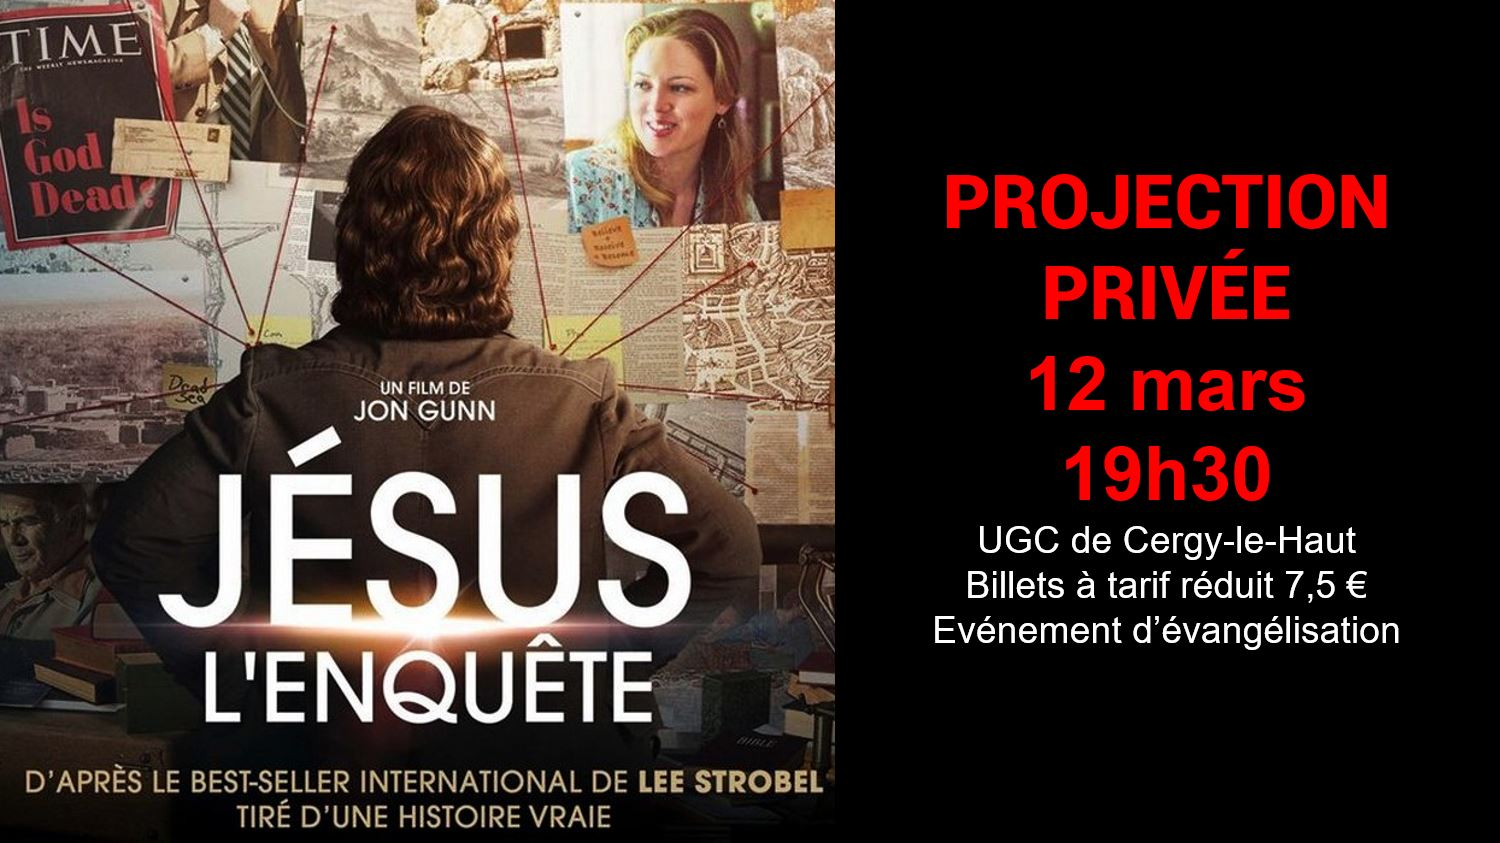 180312 projection privée compressed